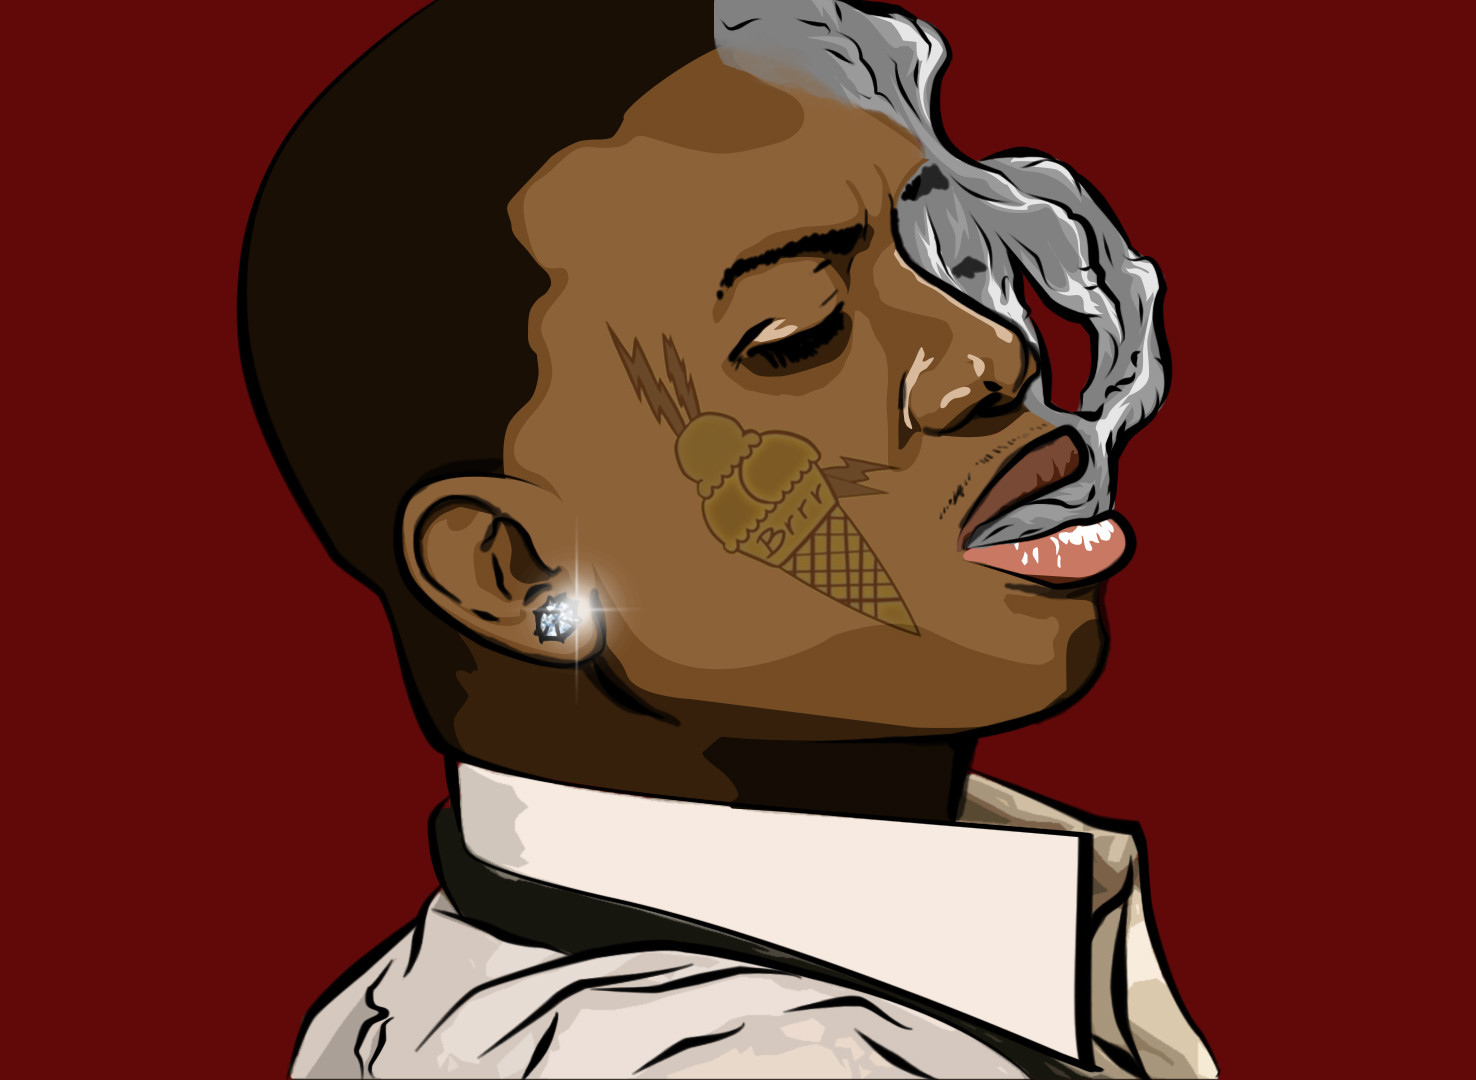 This is an image of Eloquent Gucci Mane Tattoo Drawing